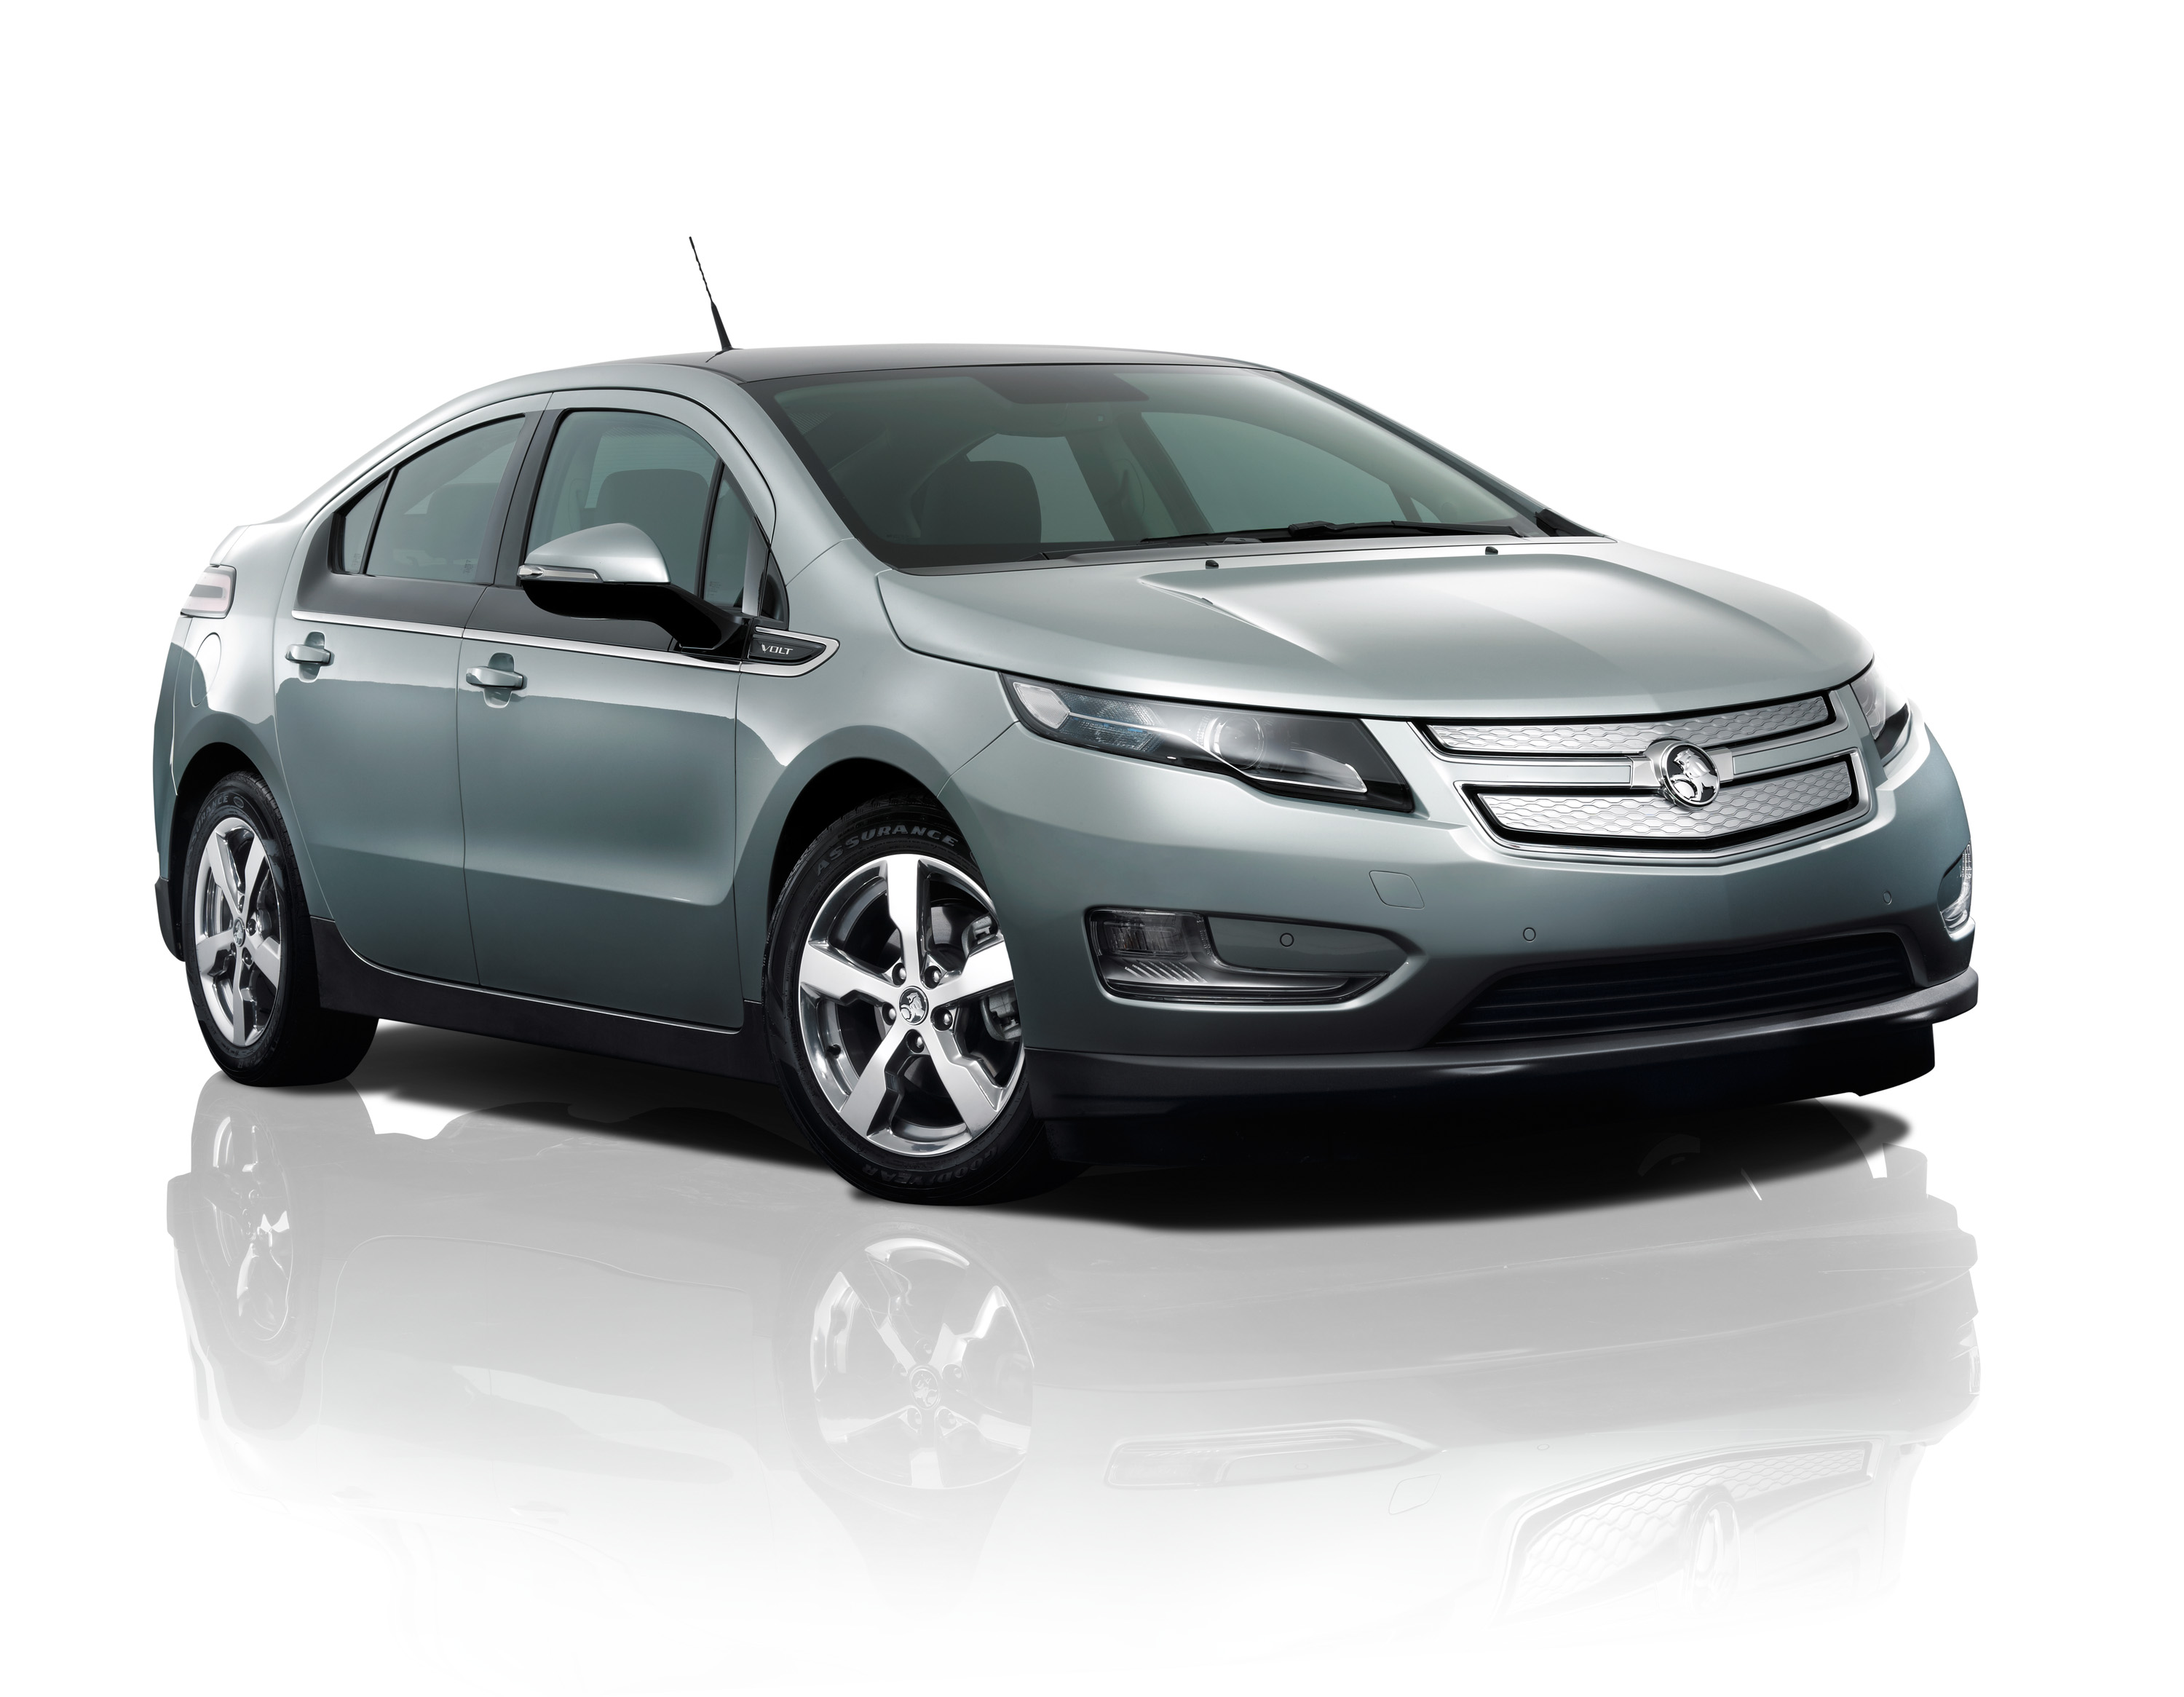 Armoured Vehicles Latin America ⁓ These Holden Cruze 2010